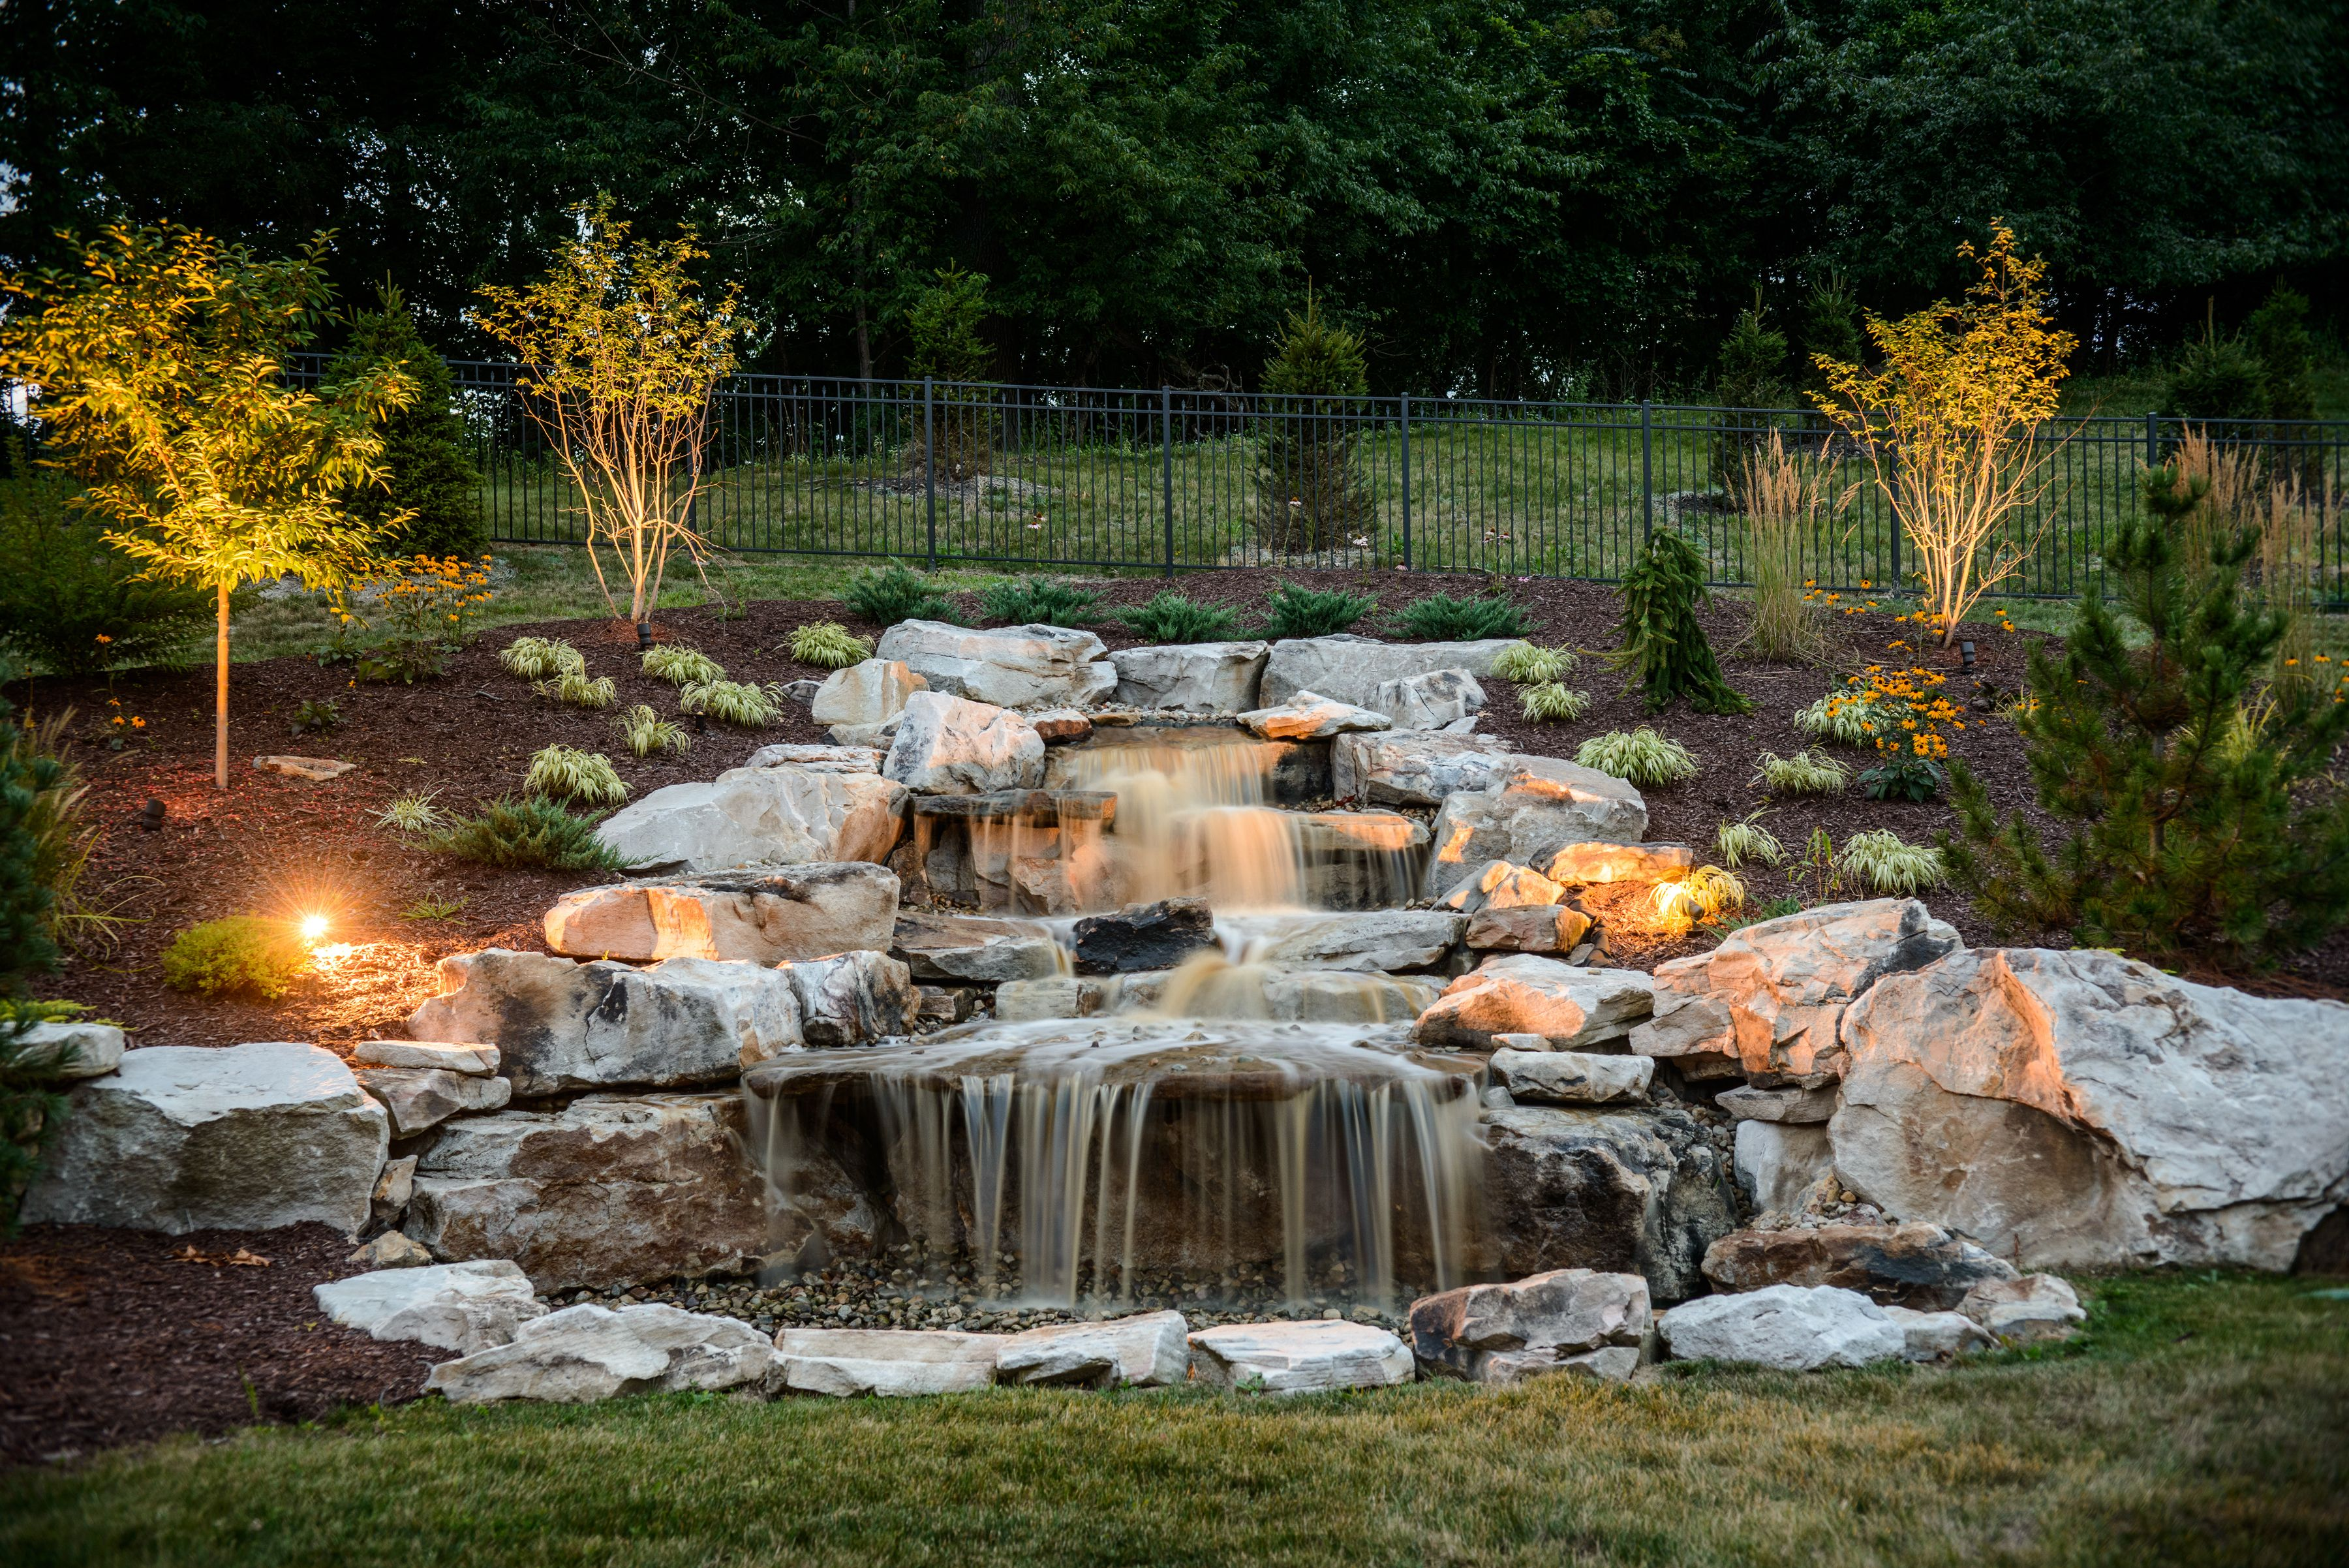 Add outdoor lighting to your pondless waterfall | Water ... on Front Yard Waterfall Ideas id=49921